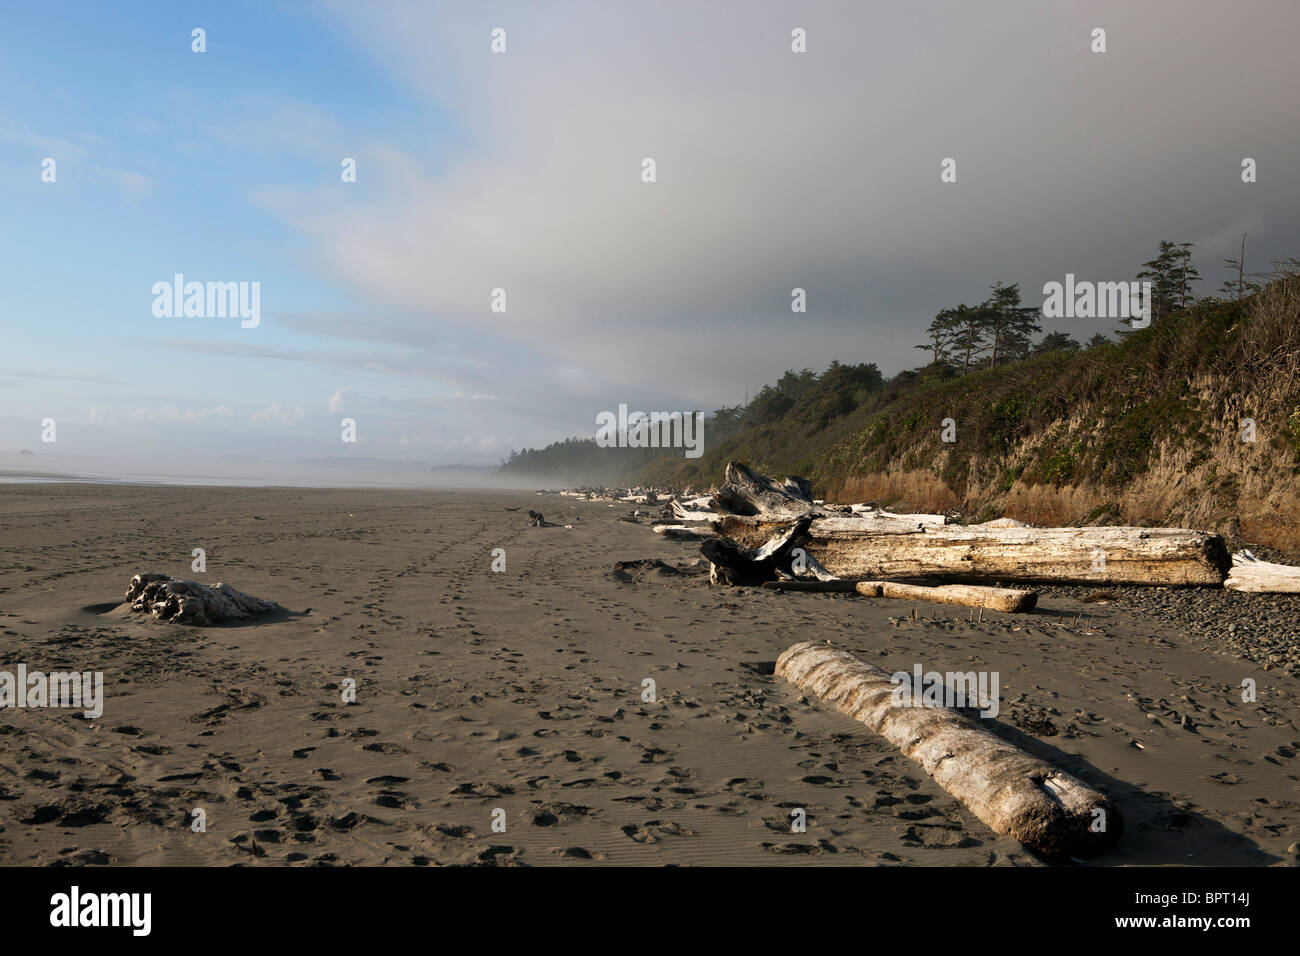 Timbers washed ashore on a beach, Olympic National Park, Washington, United States of America - Stock Image